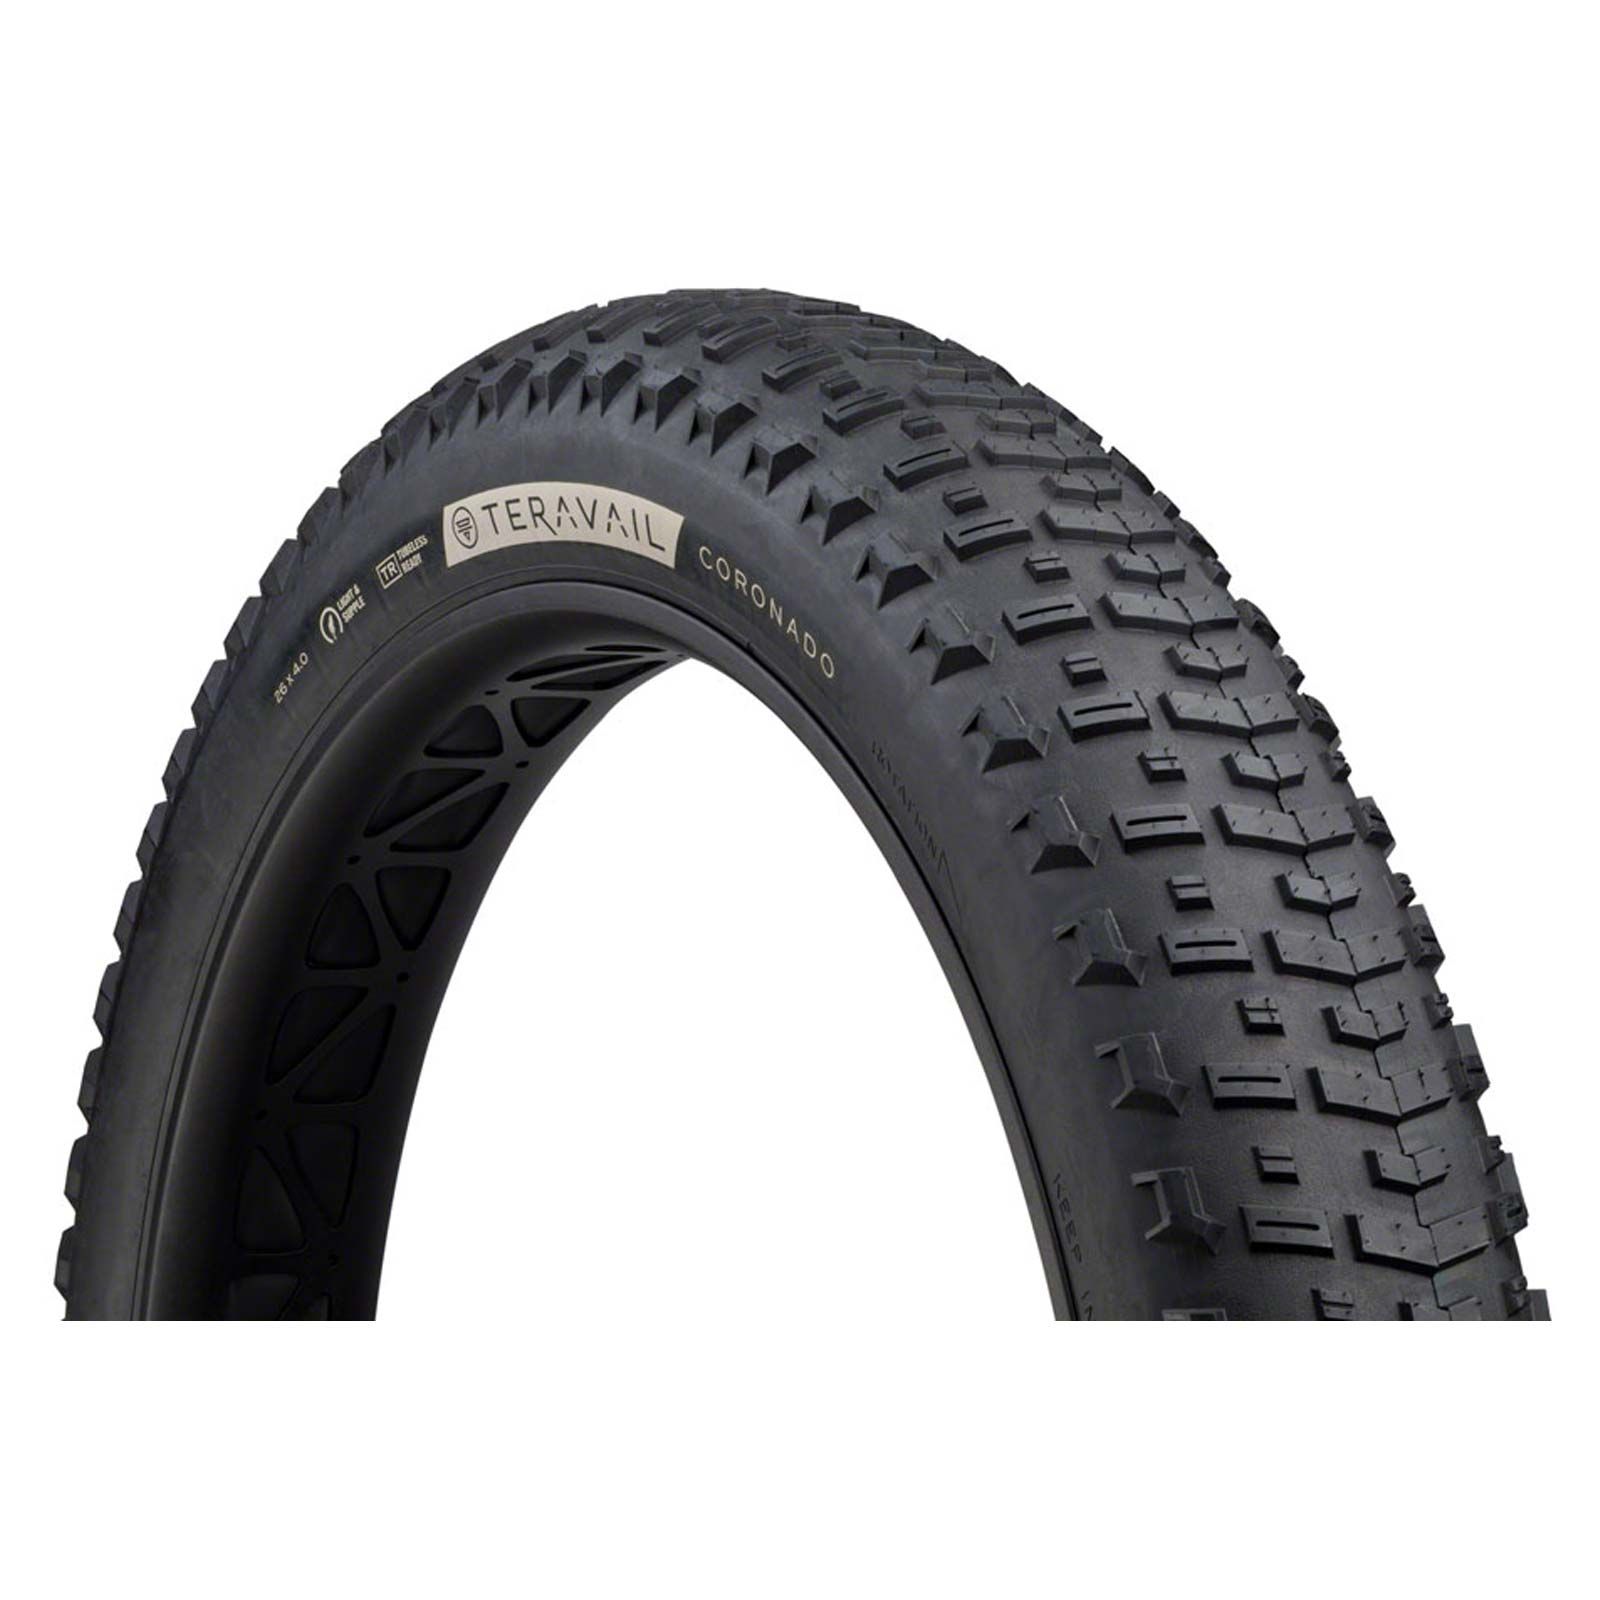 Teravail Coronado Tire-26 x 4.0-Durable-Tubeless Ready-Black